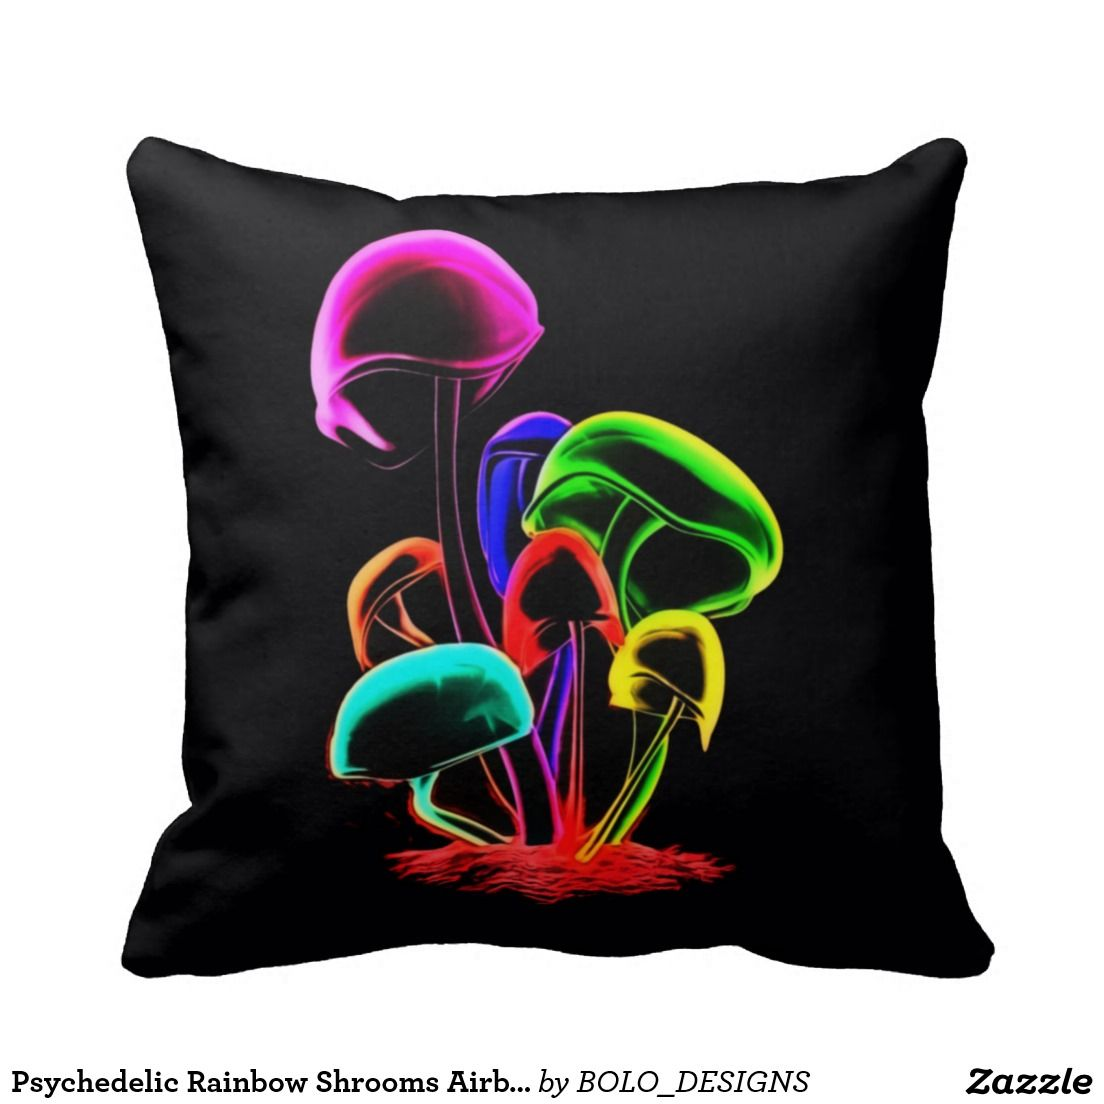 Psychedelic Rainbow Shrooms Airbrush Art Pillow